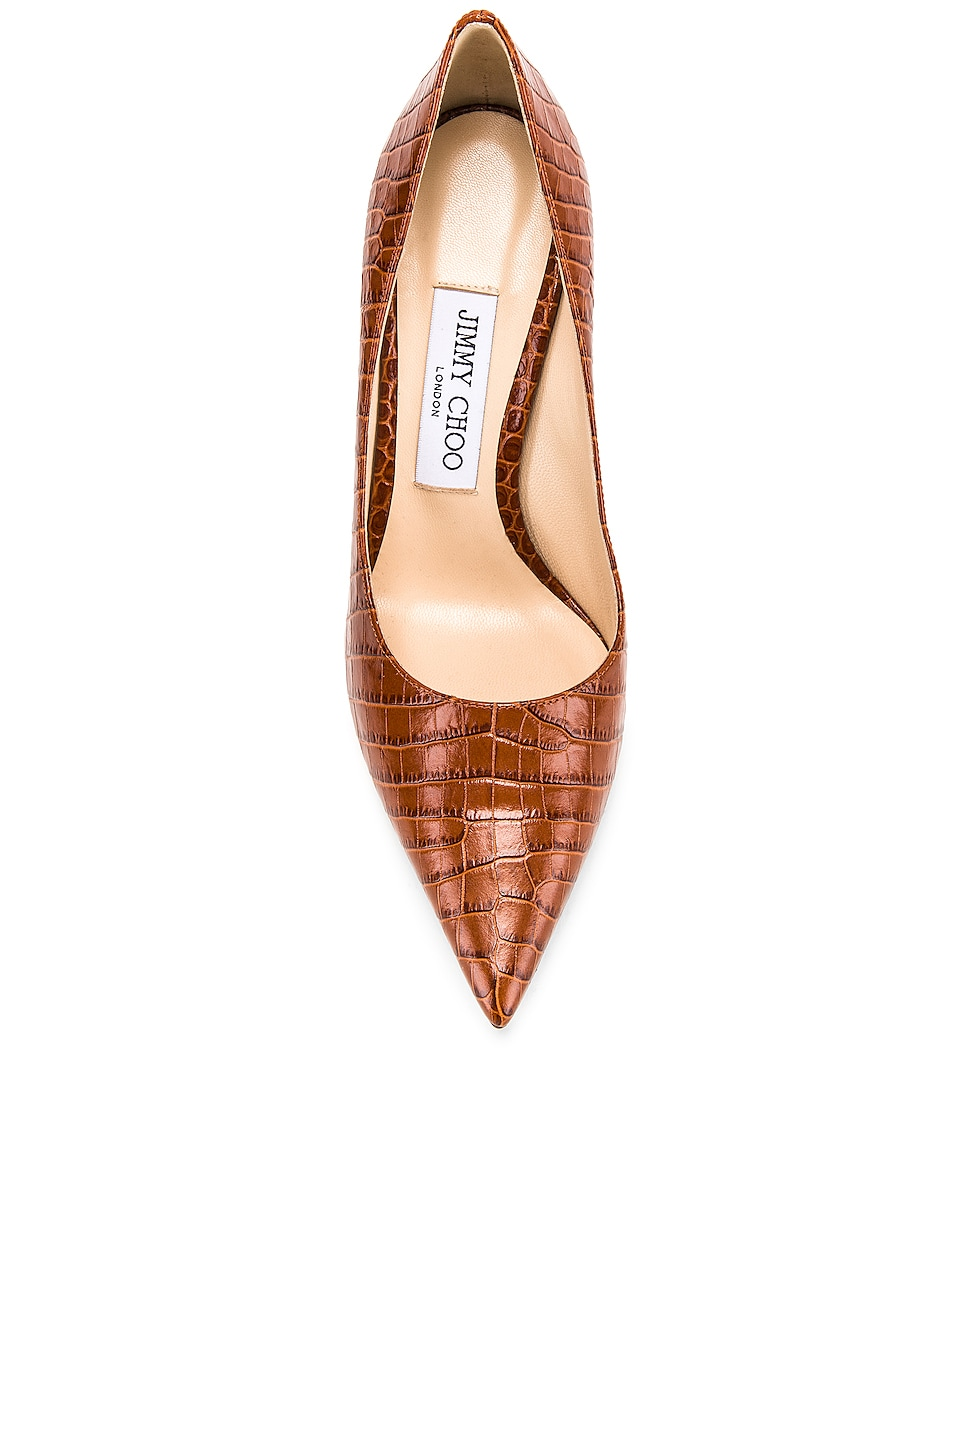 Image 4 of Jimmy Choo Croc Embossed Love 100 Heel in Cuoio